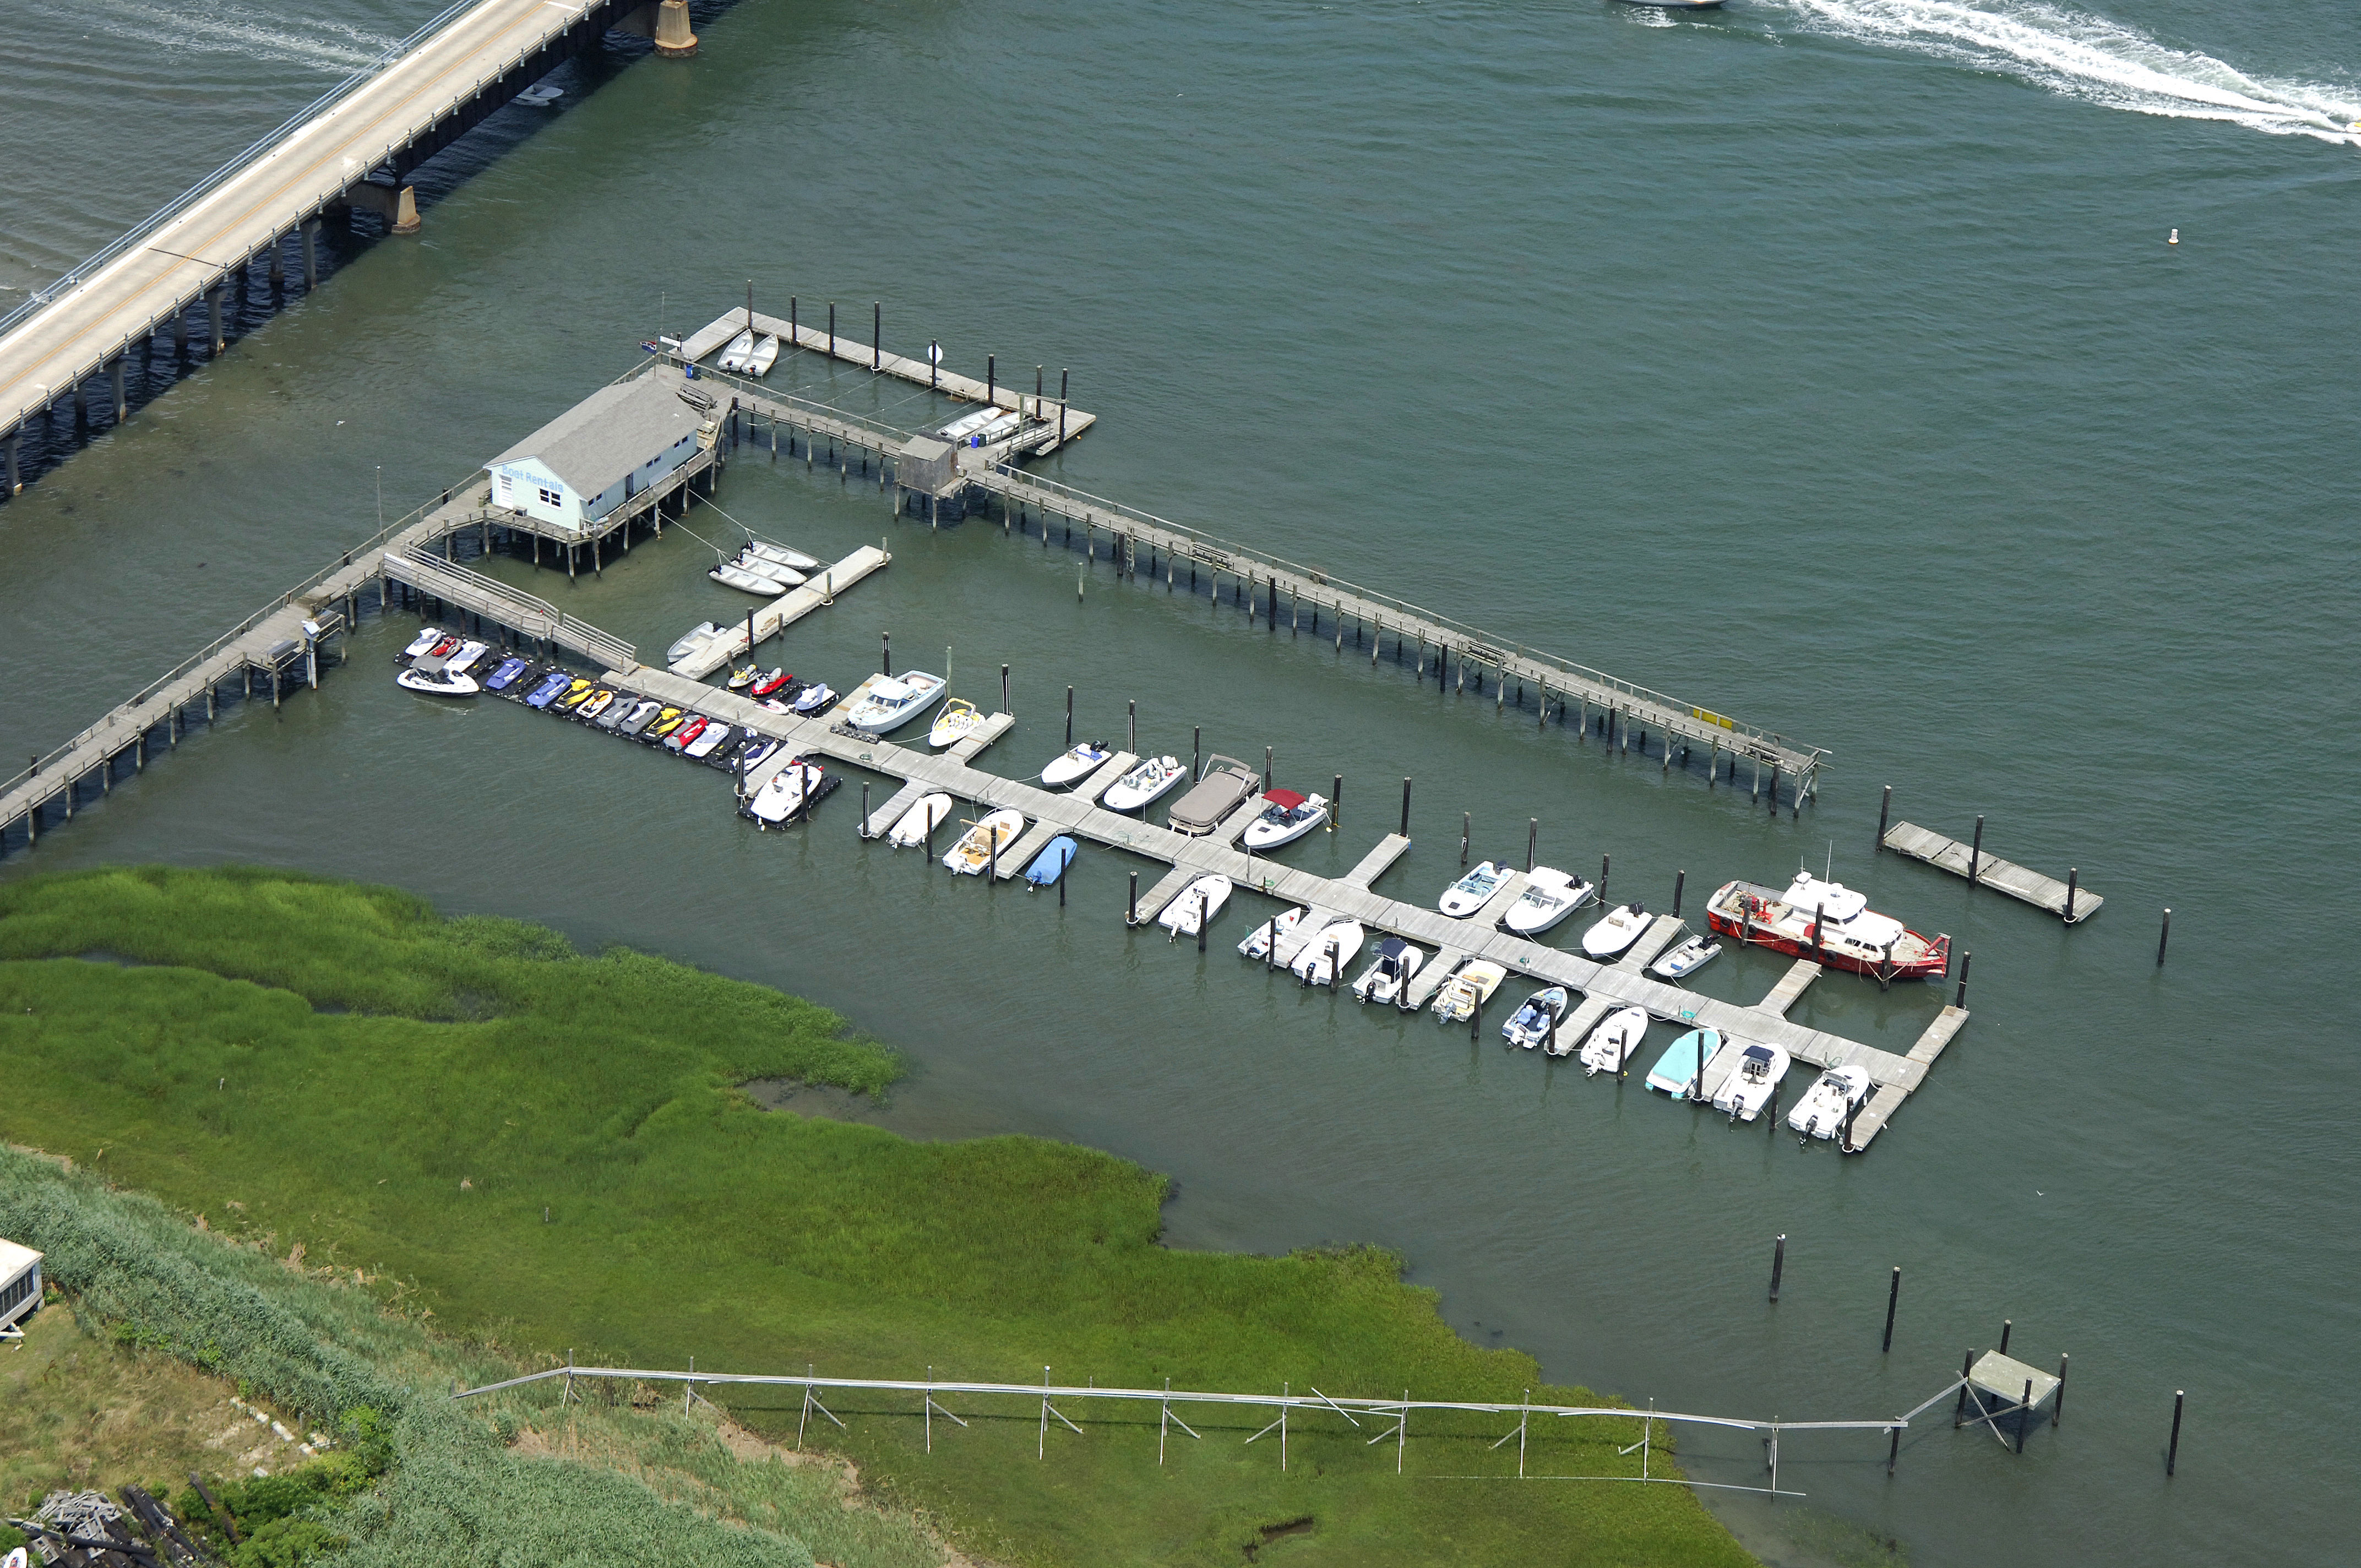 Dads Place Marina In North Wildwood NJ United States